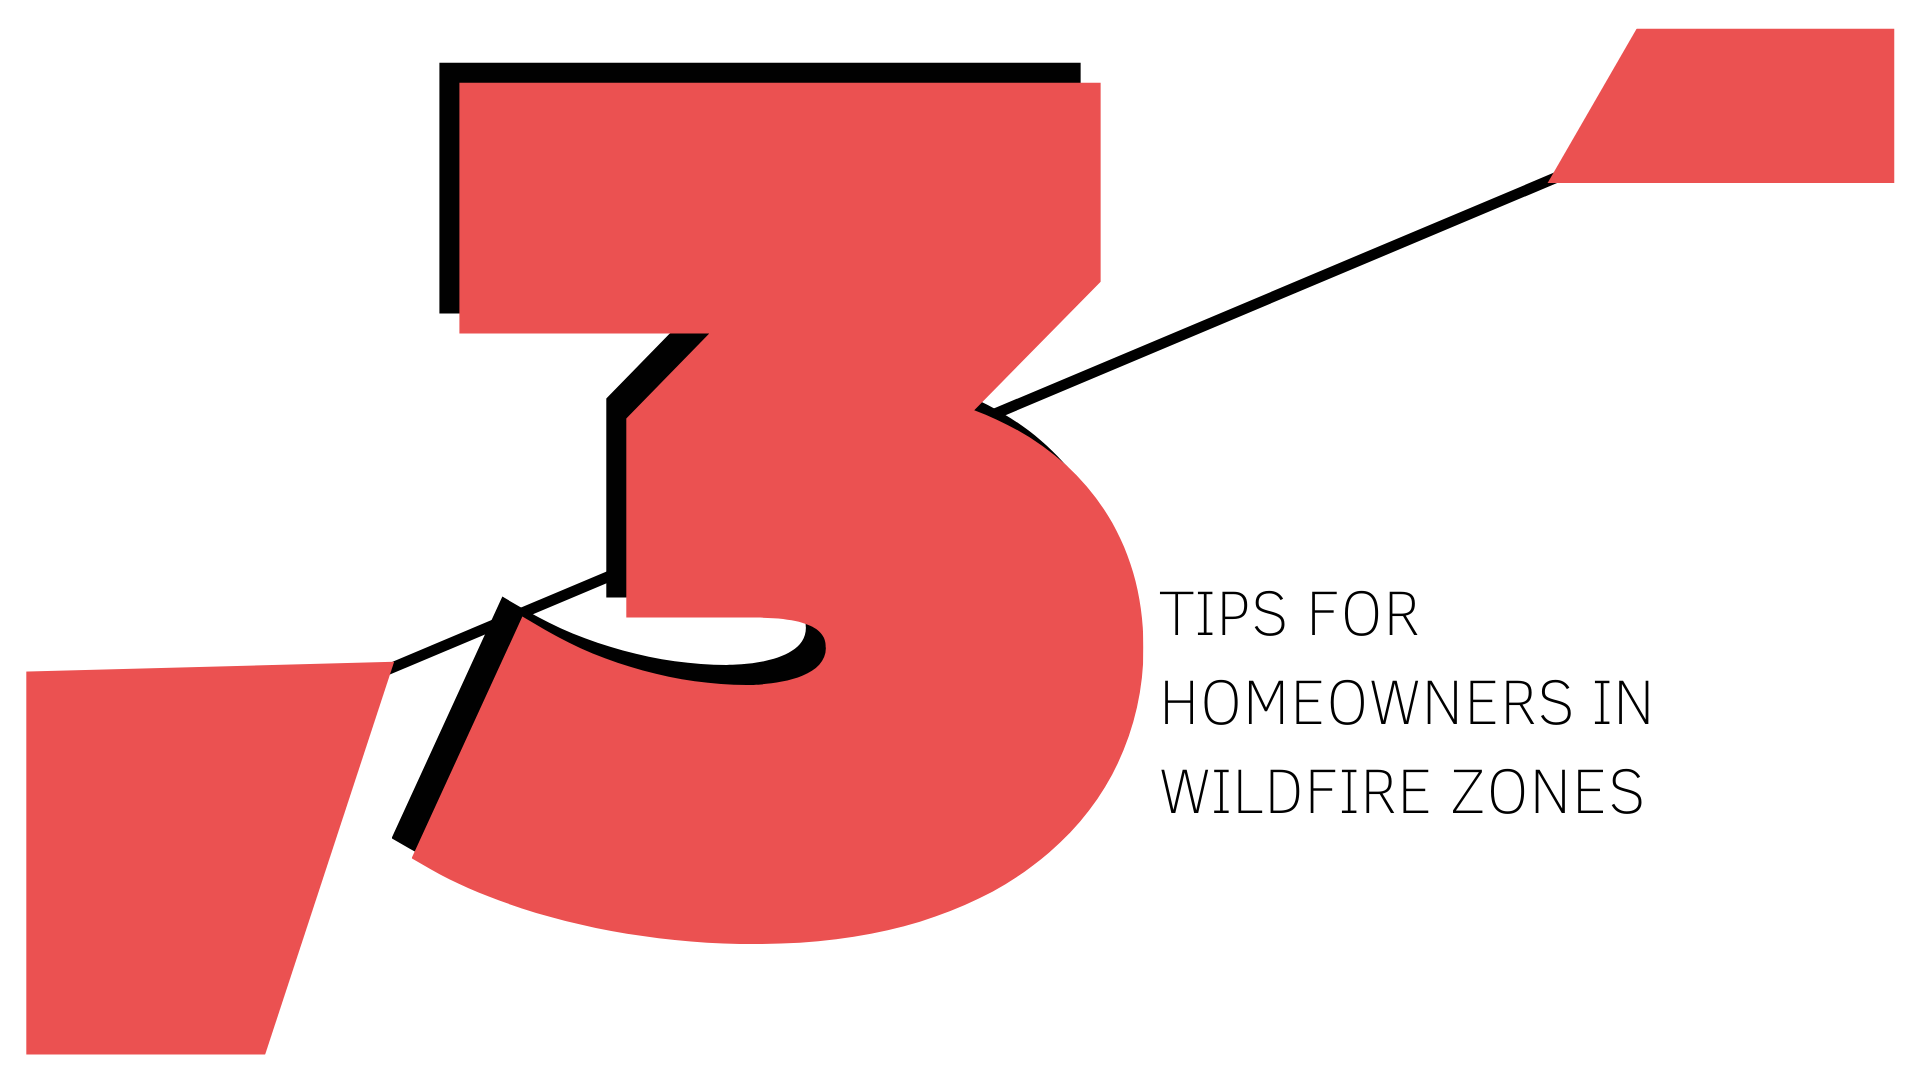 Tips for Homeowners in Wildfire Zones